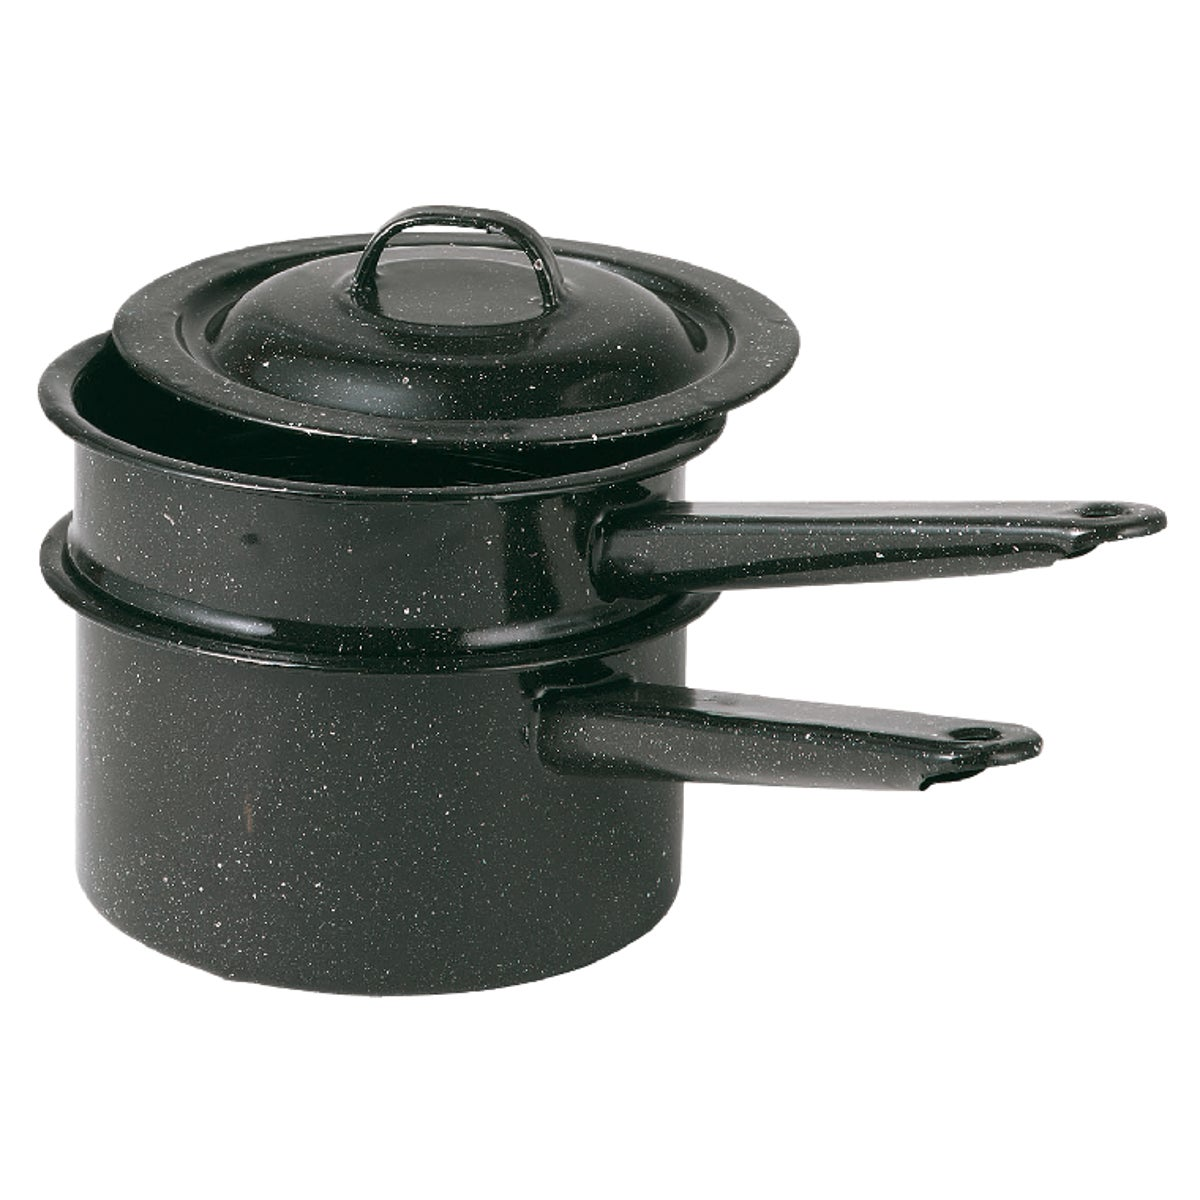 1-1/2QT DOUBLE BOILER - 6150-4 by Columbian Home Prod